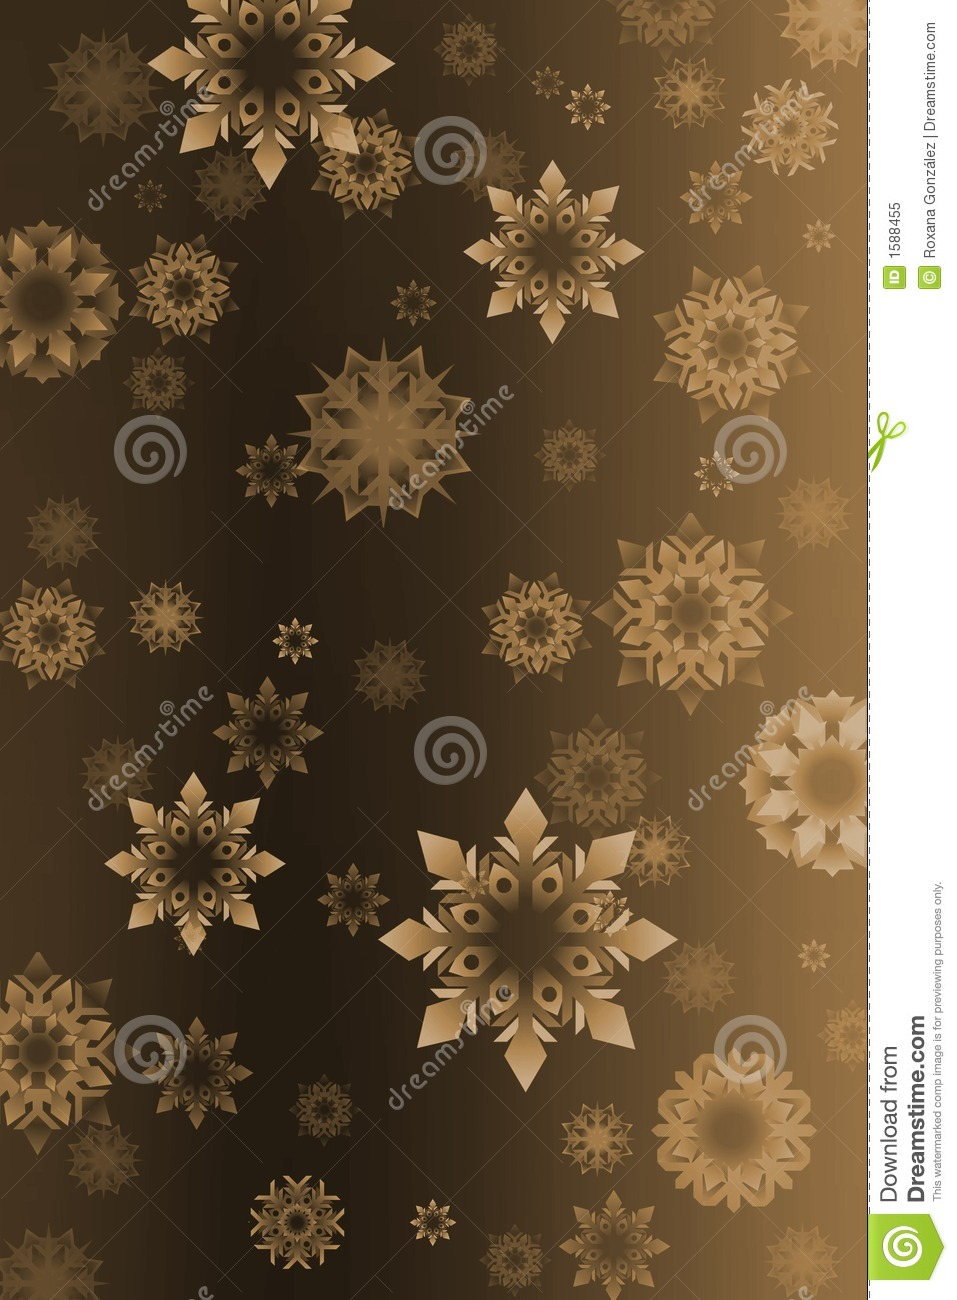 Free Download Of Christmas Wallpaper With Snow Falling Vintage Snowflakes Background Stock Illustration